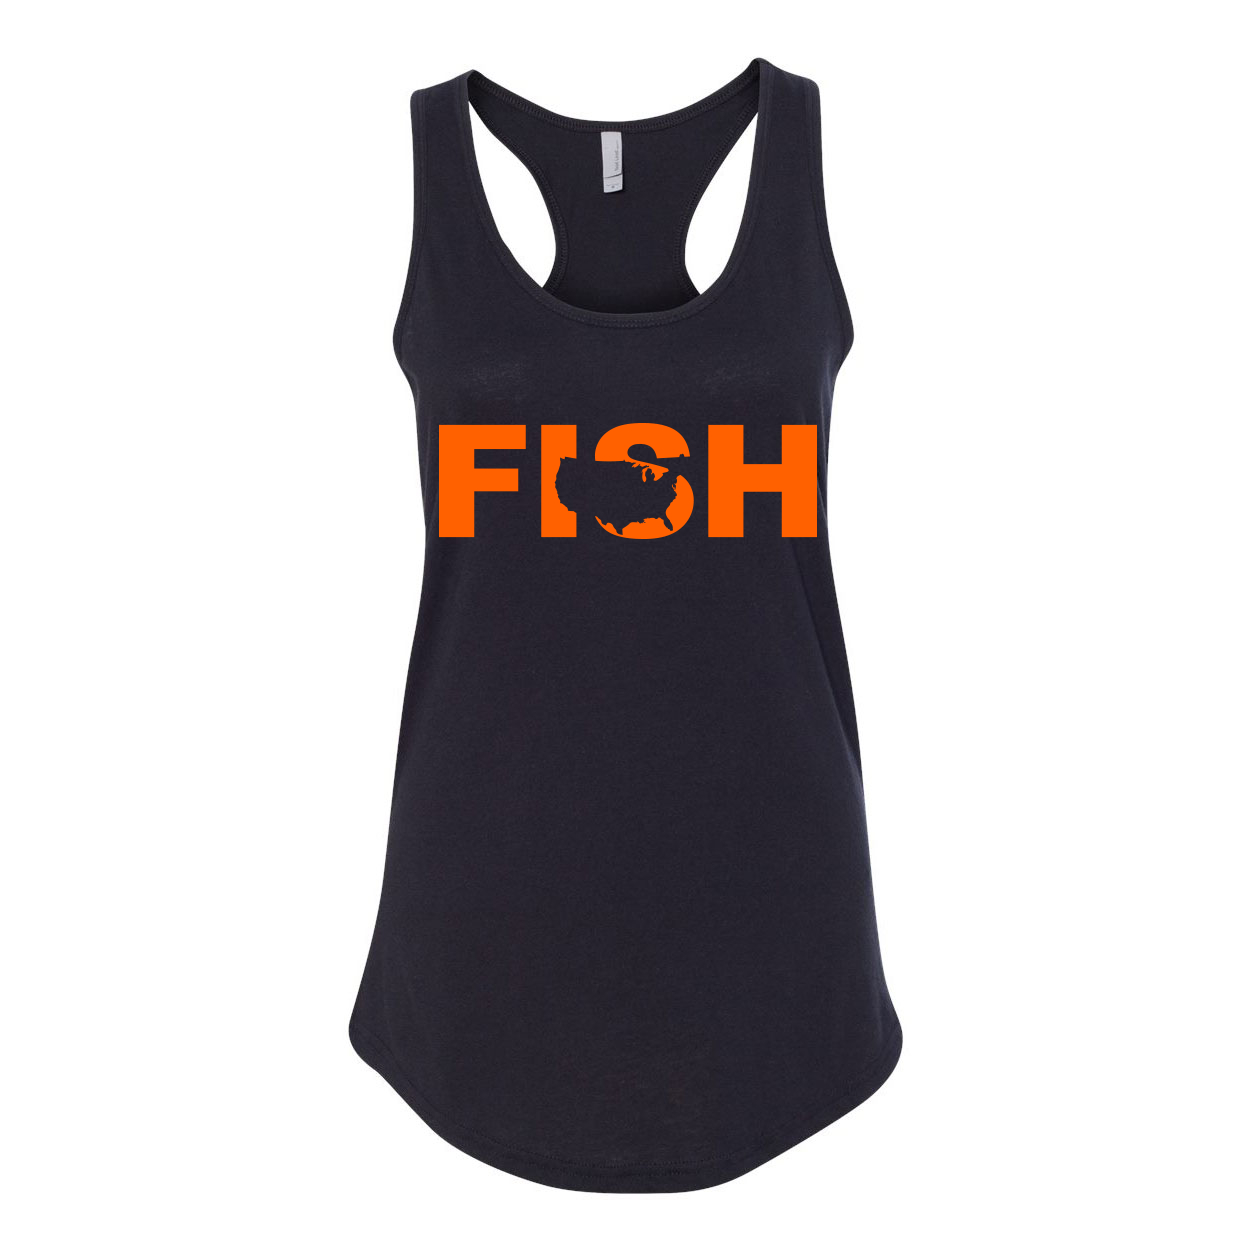 Fish United States Classic Women's Racerback Tank Top Black (Orange Logo)